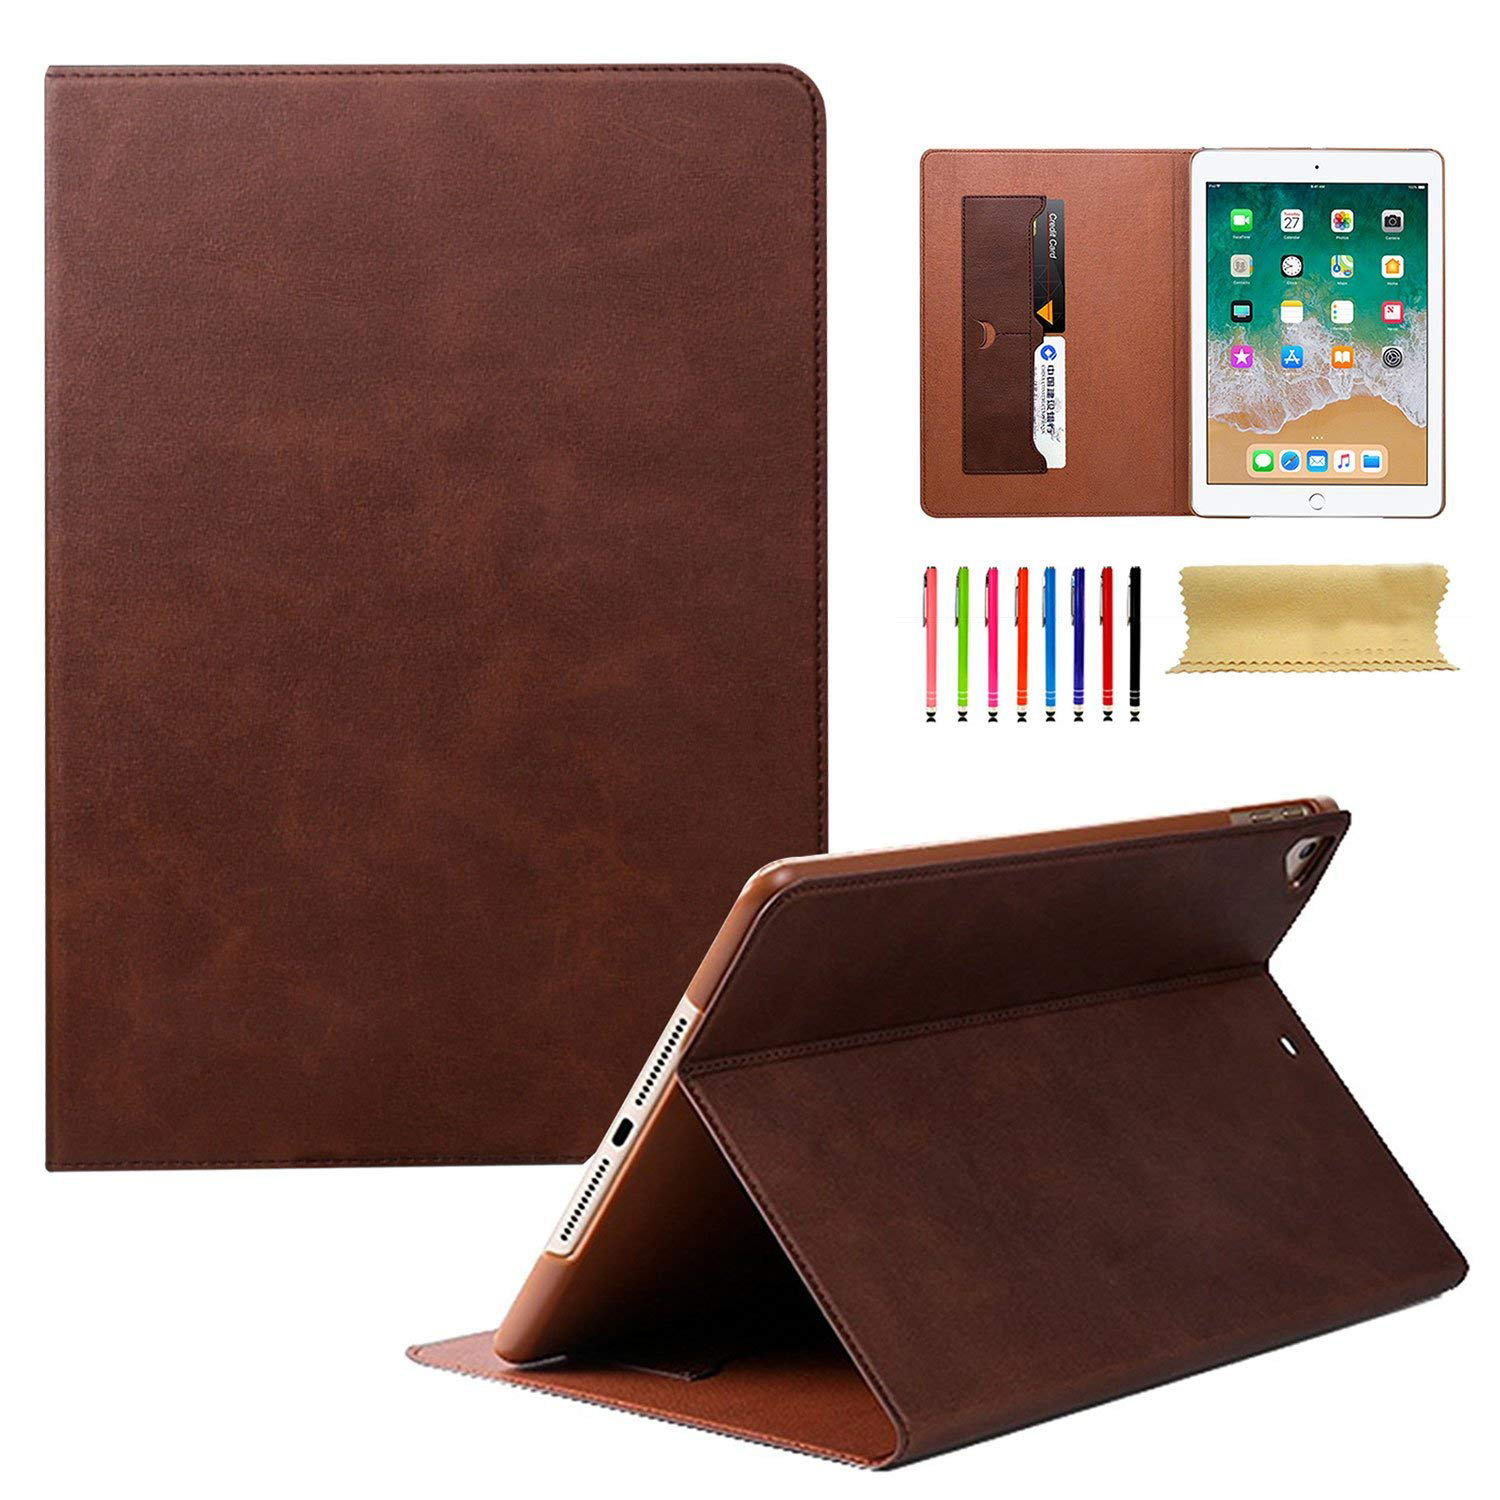 iPad mini 4 7.9 Inch Case, Goodest PU Leather Ultra Slim Fit Smart Cover Auto Sleep Wake Folio Stand Cards Slots Shockproof Lightweight Case Shell for Apple iPad mini 4th Gen Model A1550 A1538,Brown